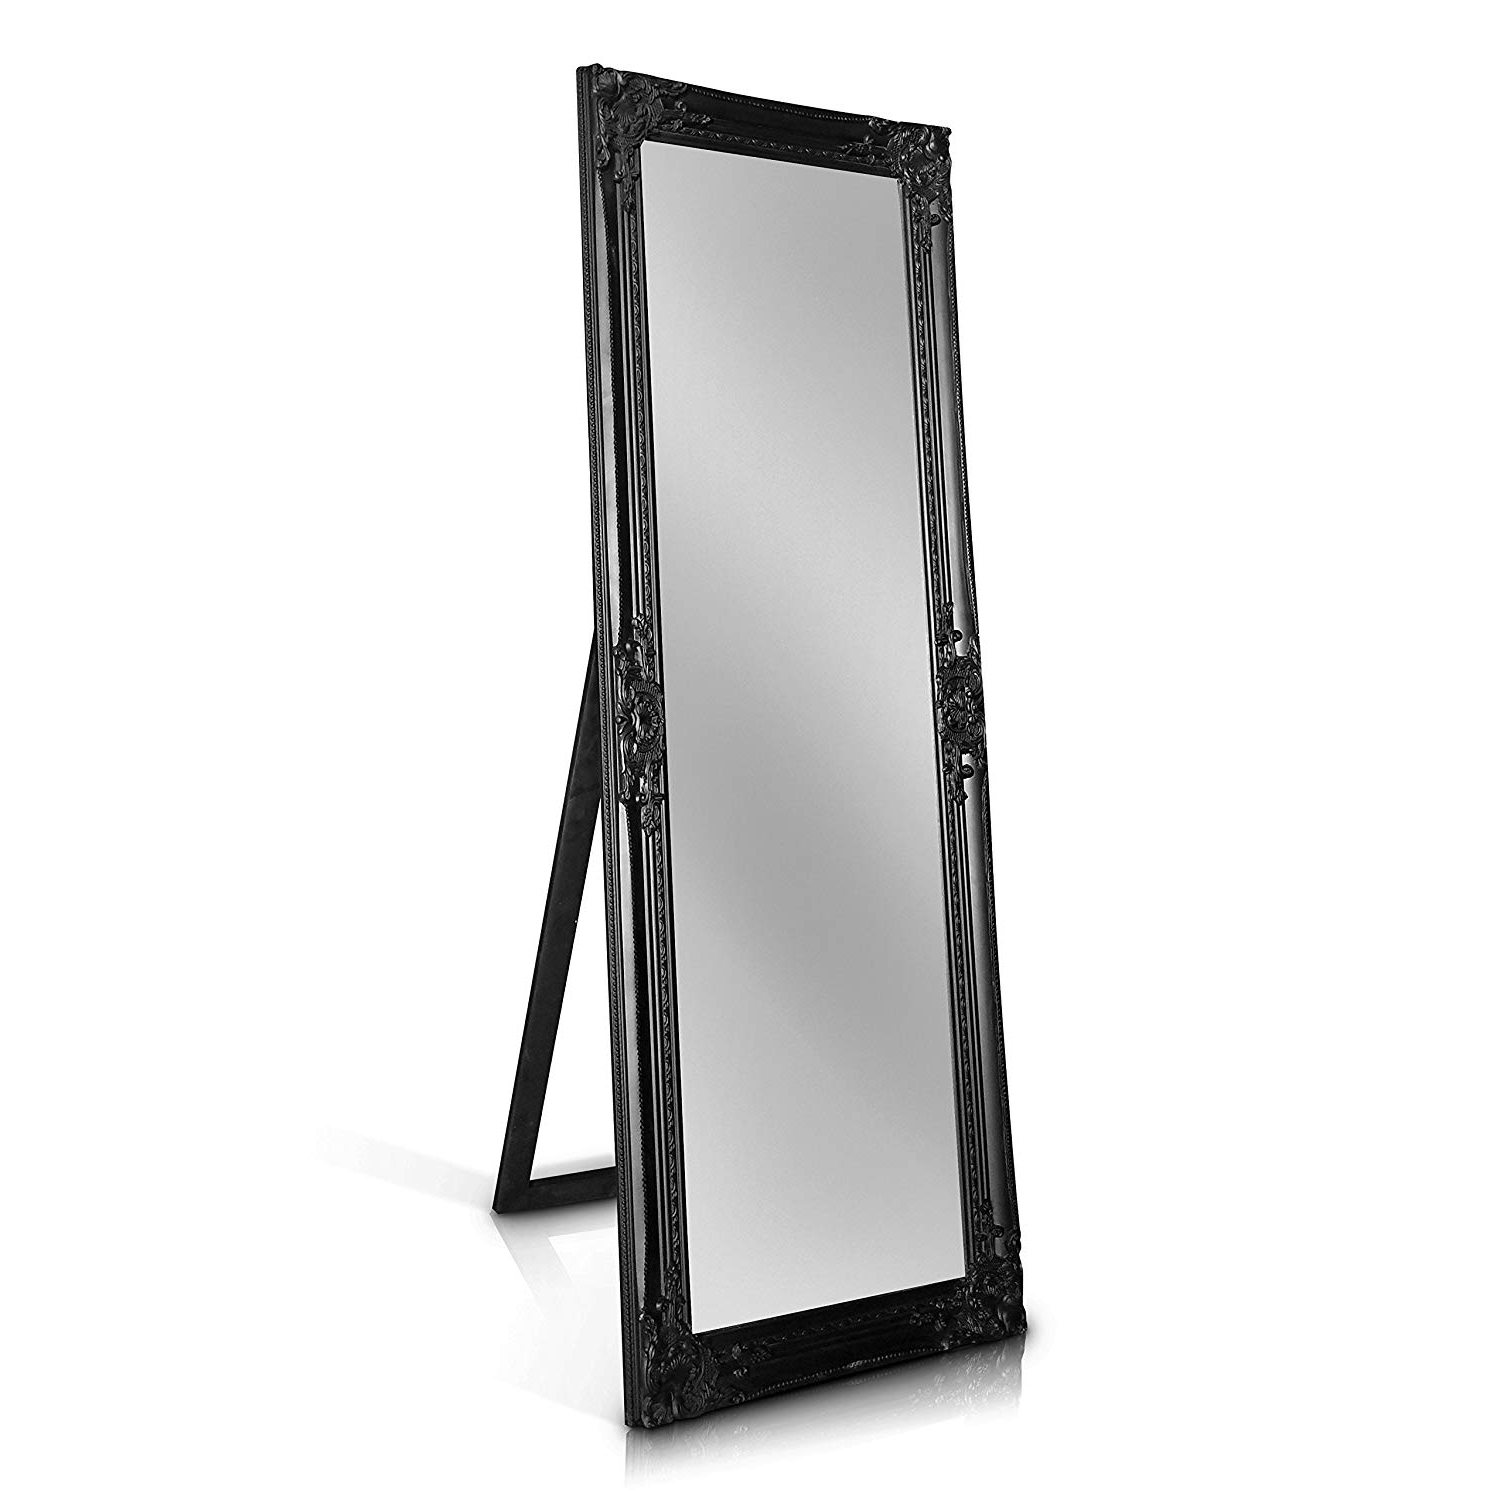 Widely Used Stand Up Wall Mirrors Intended For Rocococasa Chic – Shabby Chic Wall Mirror – 130X45 Cm Solid Wood – Large French Vintage Style Full Length Standing Mirror – Antique Black (Gallery 18 of 20)